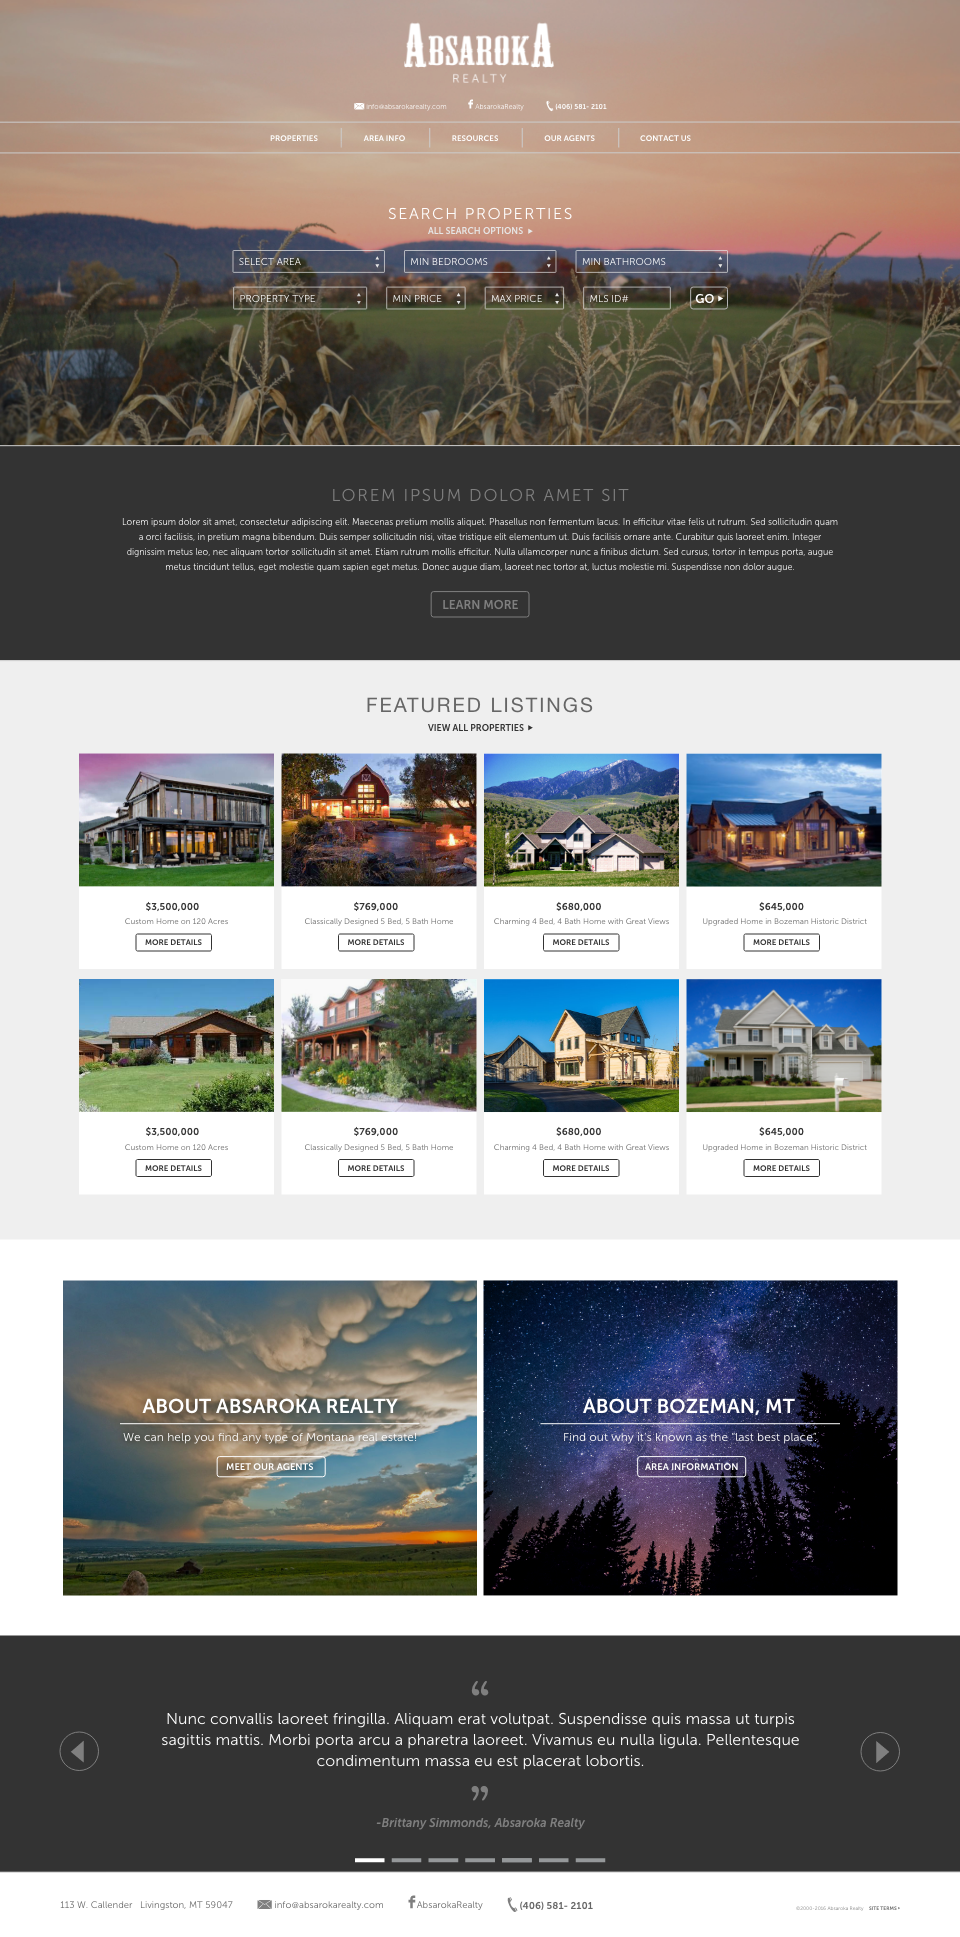 Website Design Concept For Absaroka Realty In Bozeman Montana Concept Design Website Design Bozeman